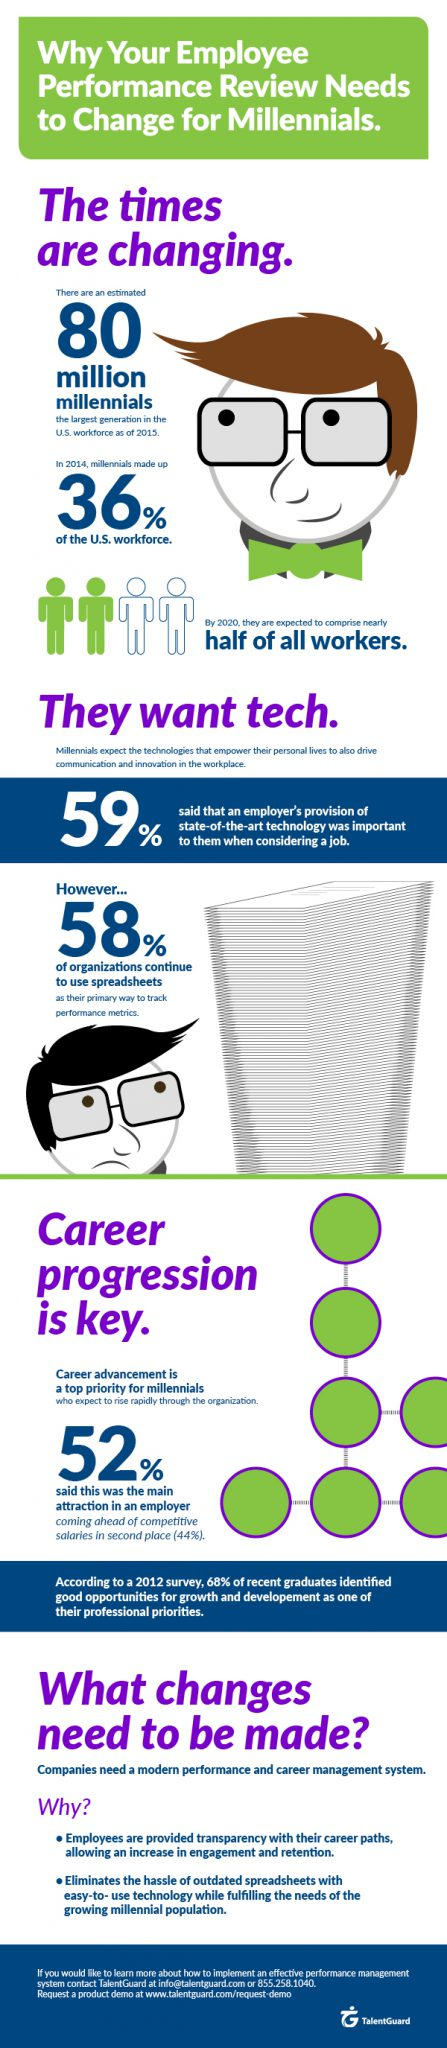 Millennial Performance Management Infographic